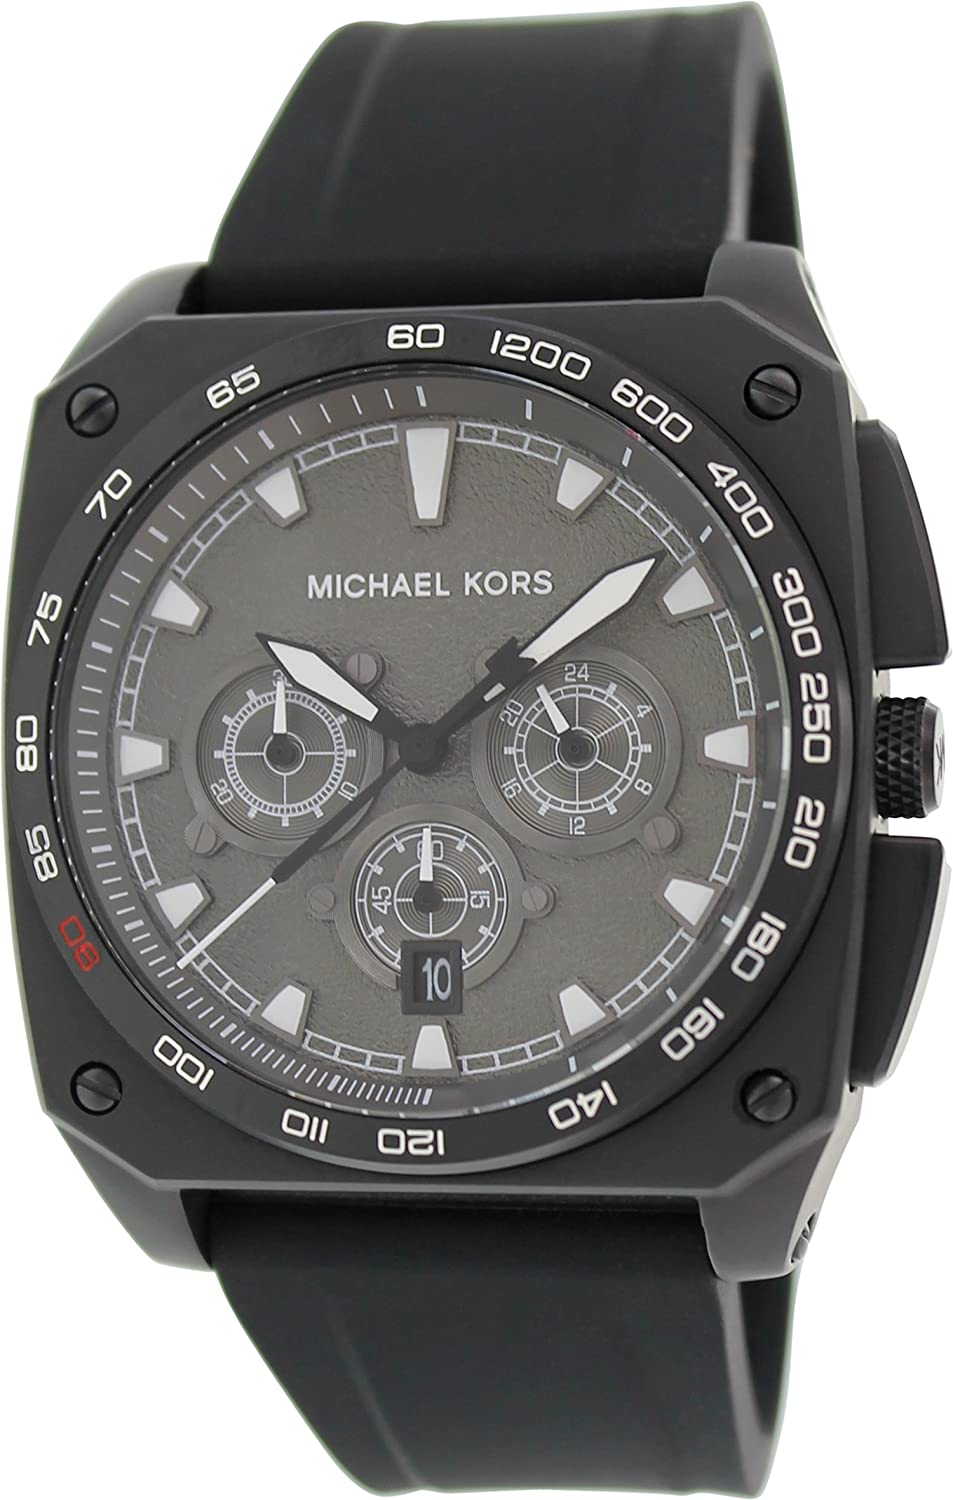 Amazon.com: Michael Kors Grandstand Chronograph Black Sandblasted Dial Black Silicone Mens Watch MK8390: Michael Kors: Watches